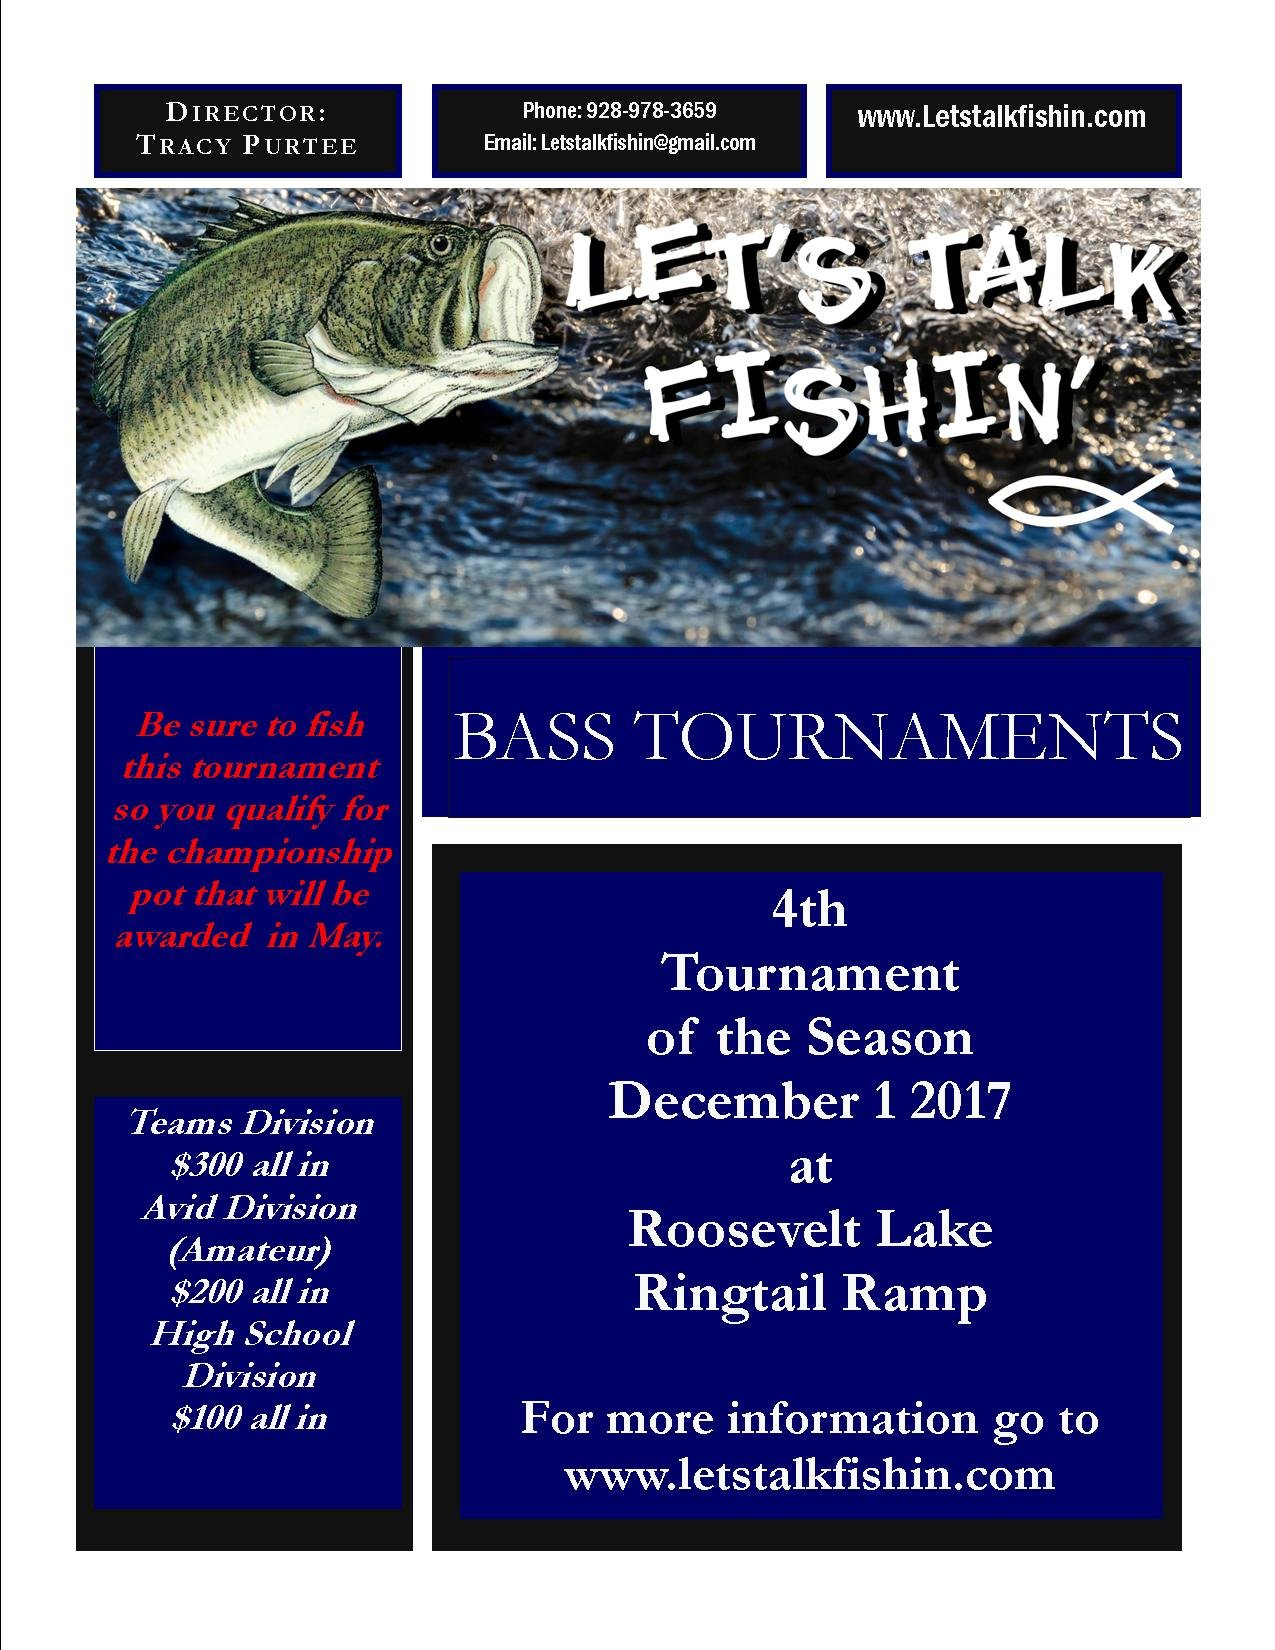 Click image for larger version  Name:4th Tournament.jpg Views:1728 Size:285.4 KB ID:96770